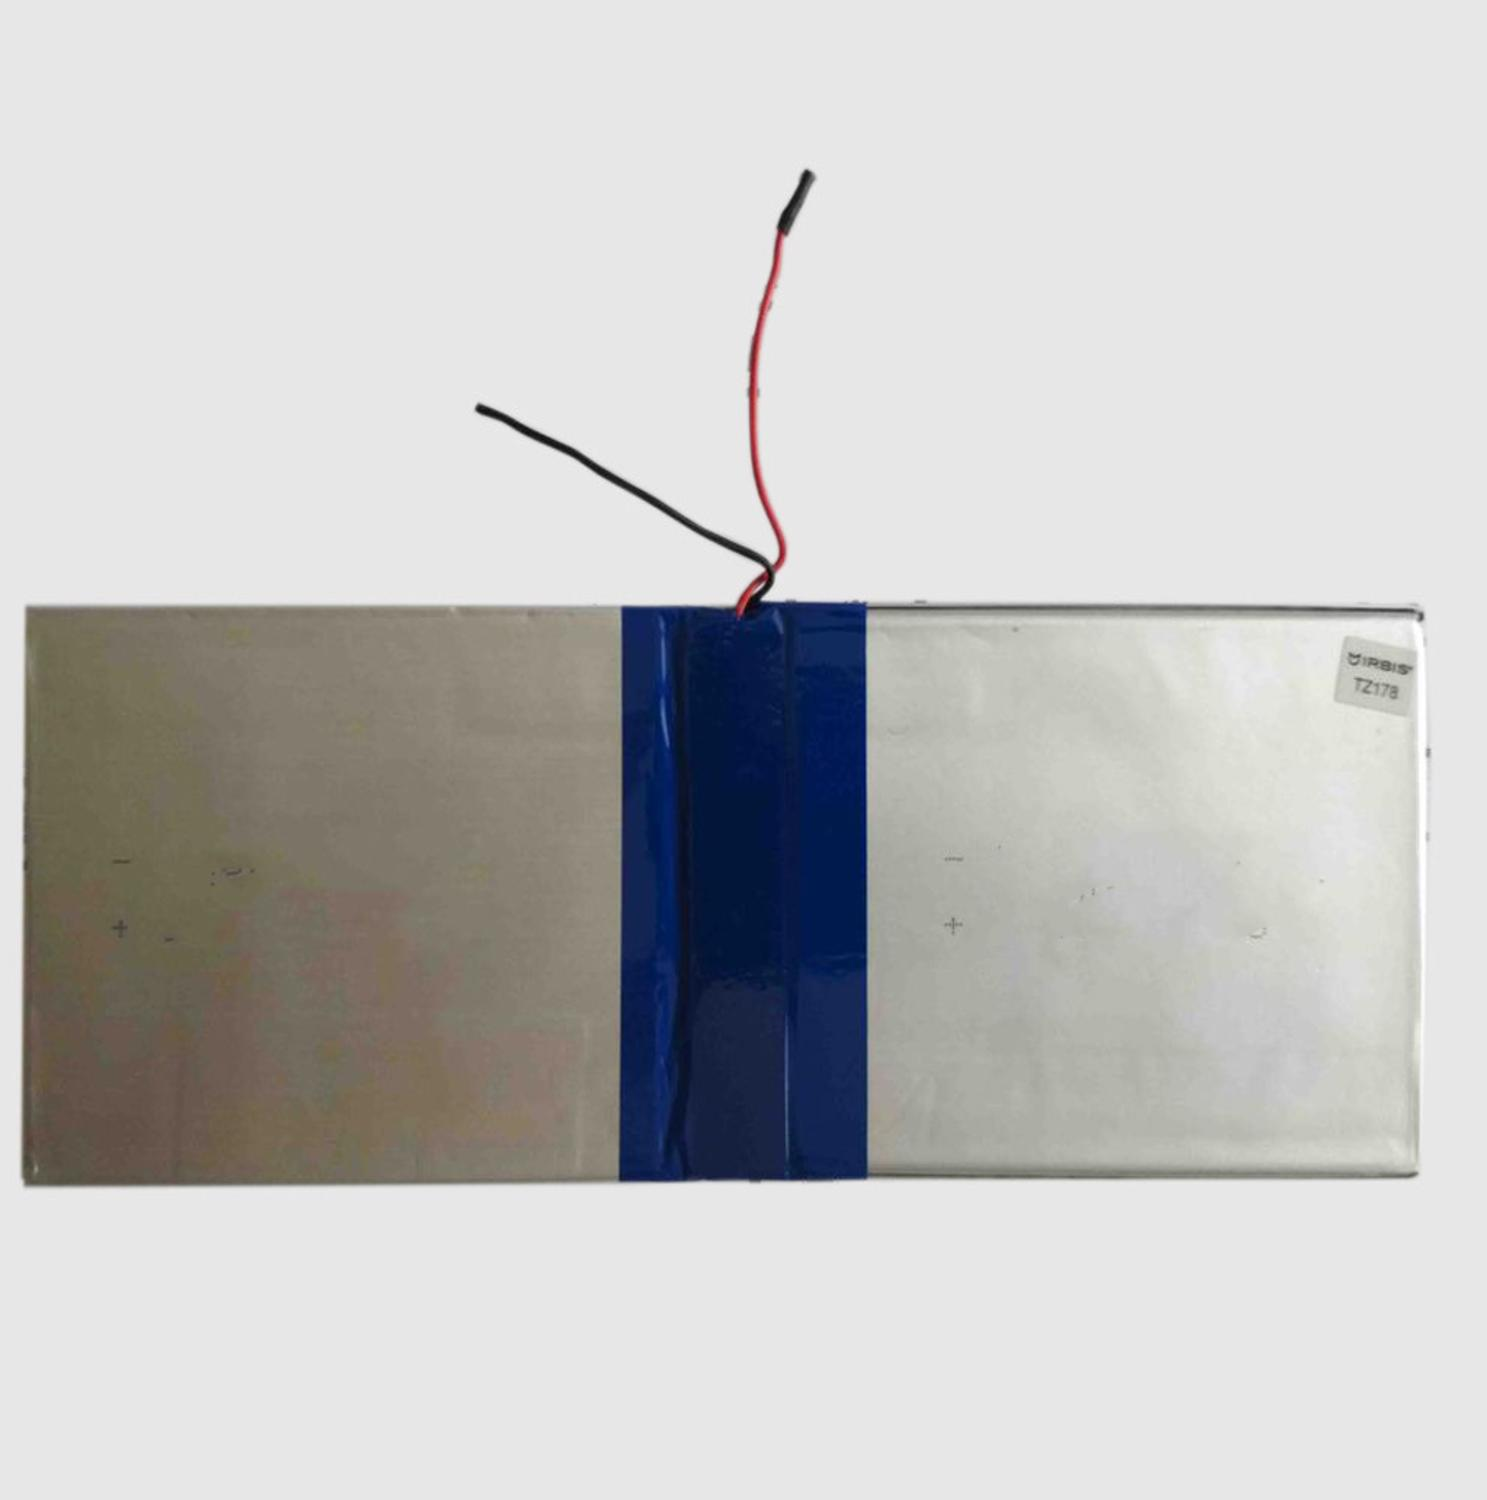 <font><b>Battery</b></font> for CHUWI Hi9 Air 10.1 Inch <font><b>Tablet</b></font> PC CWI546 New Li-polymer Rechargeable Accumulator Pack Replacement 3.7V 8000 mAh image